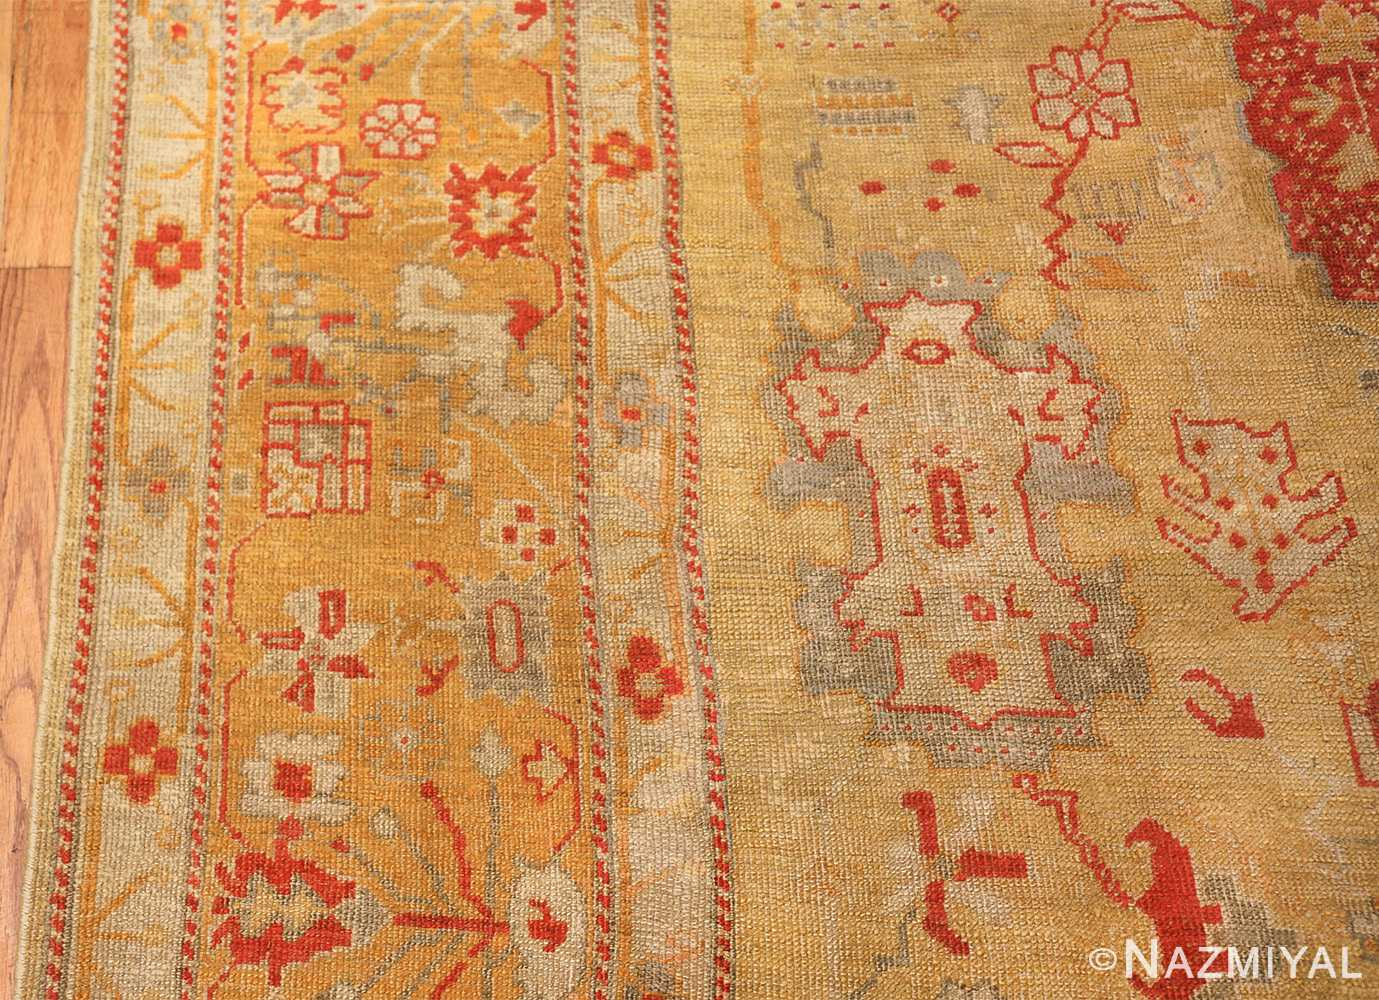 Tribal and Primitive Decorative Antique Turkish Oushak Rug 47260 Border Nazmiyal